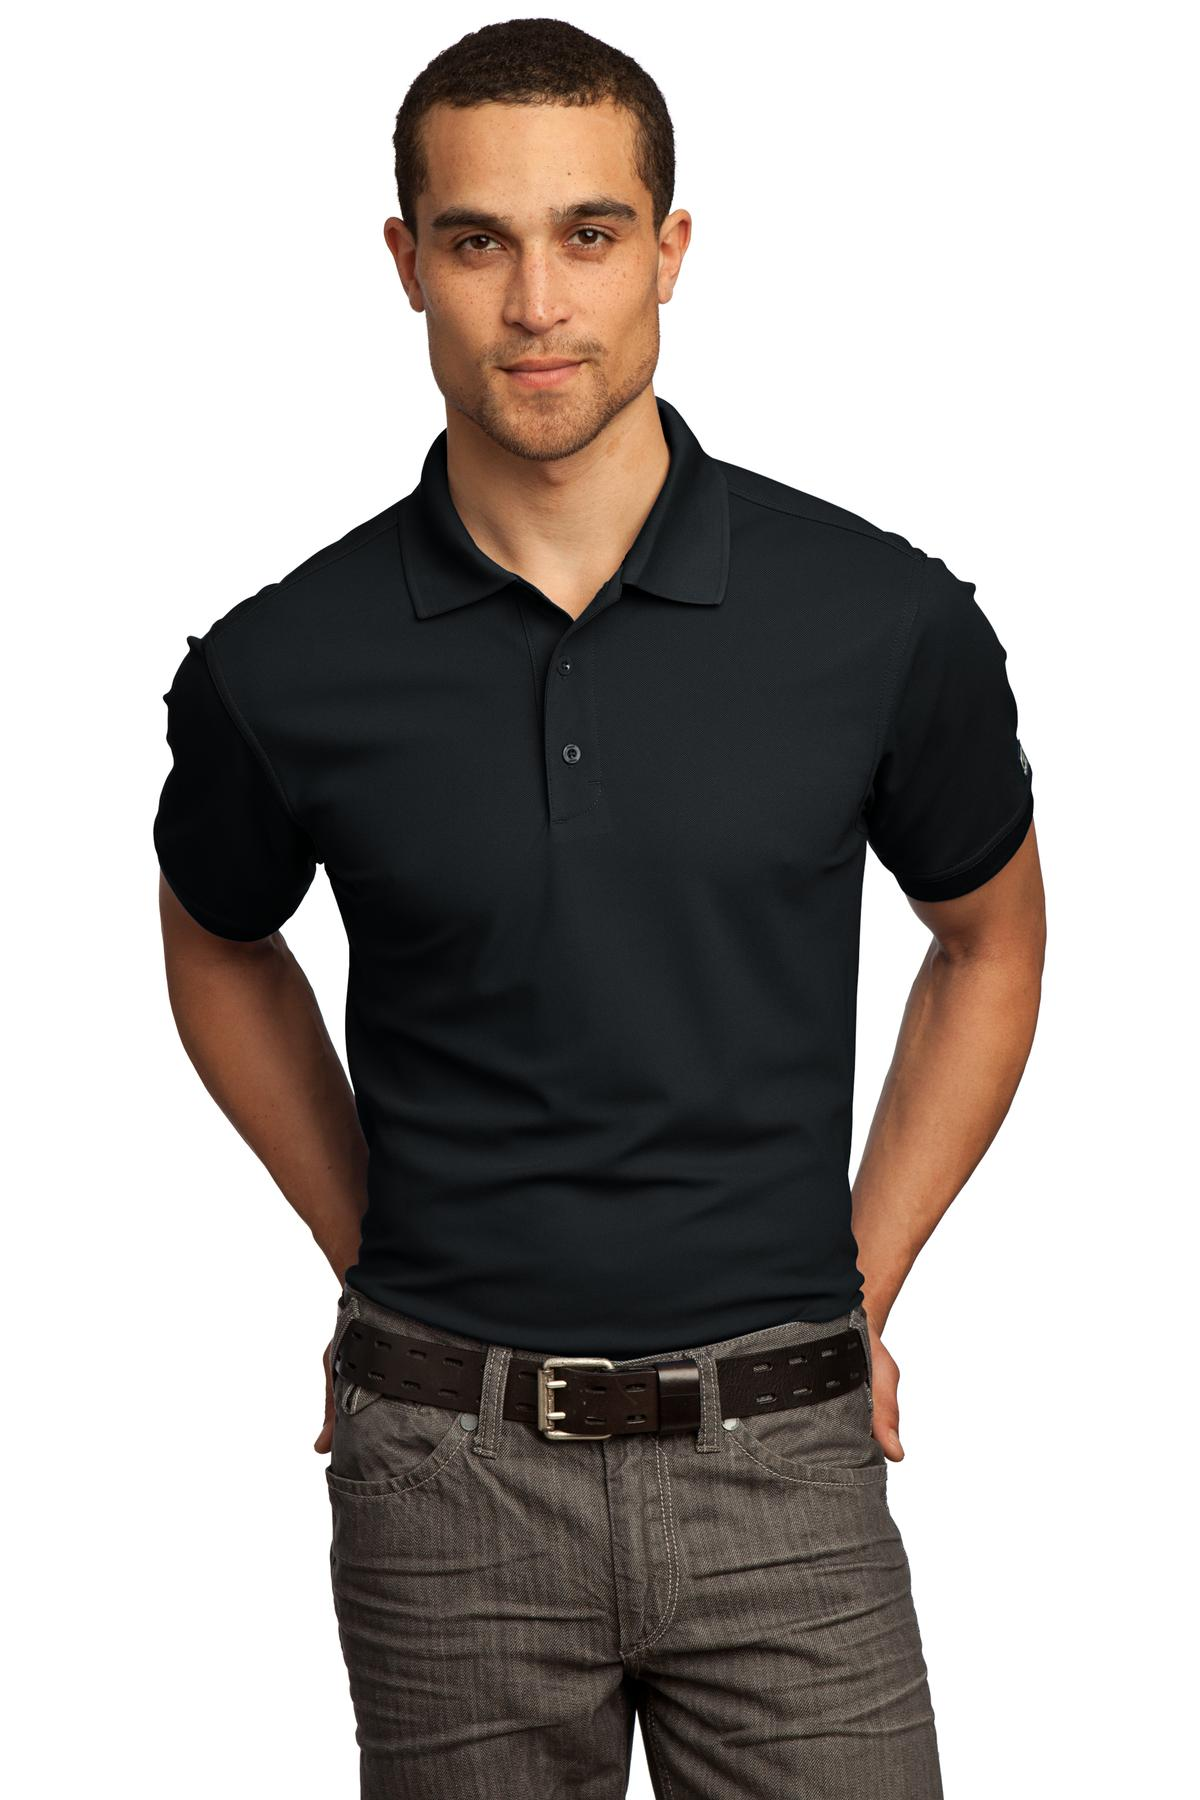 OGIO ®  - Caliber2.0 Polo. OG101 - Blacktop